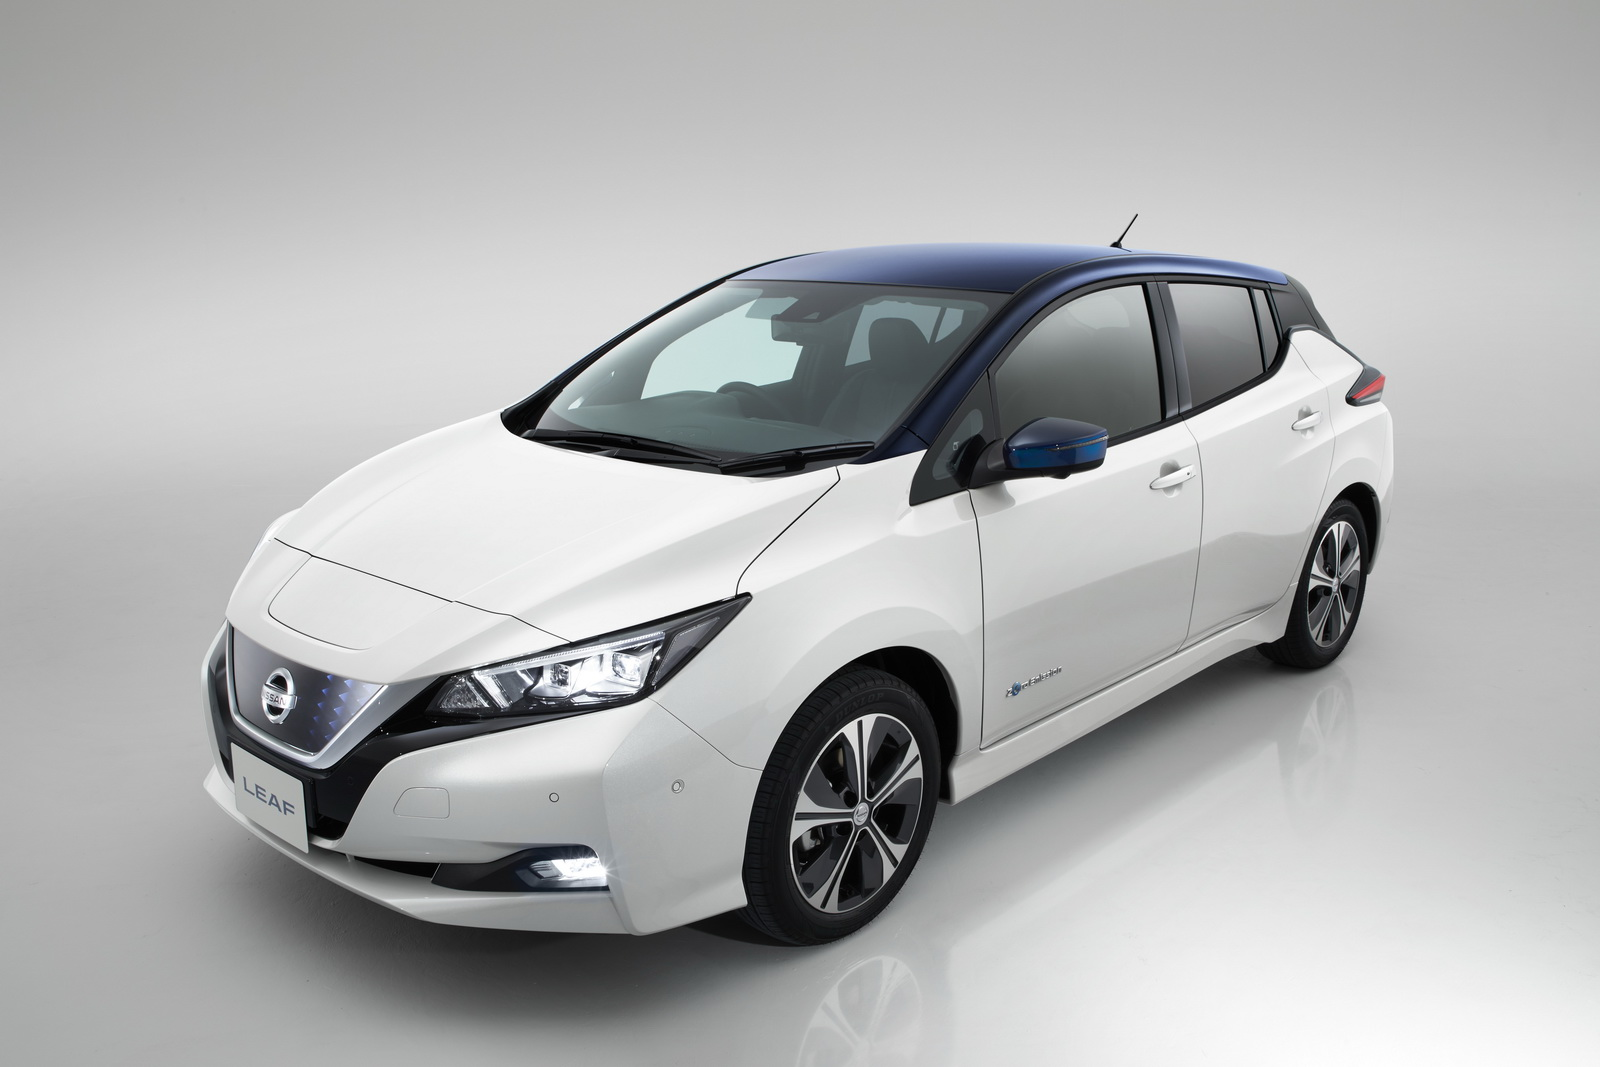 limited nissan leaf 2 zero launch edition for 339 per month in the uk carscoops. Black Bedroom Furniture Sets. Home Design Ideas